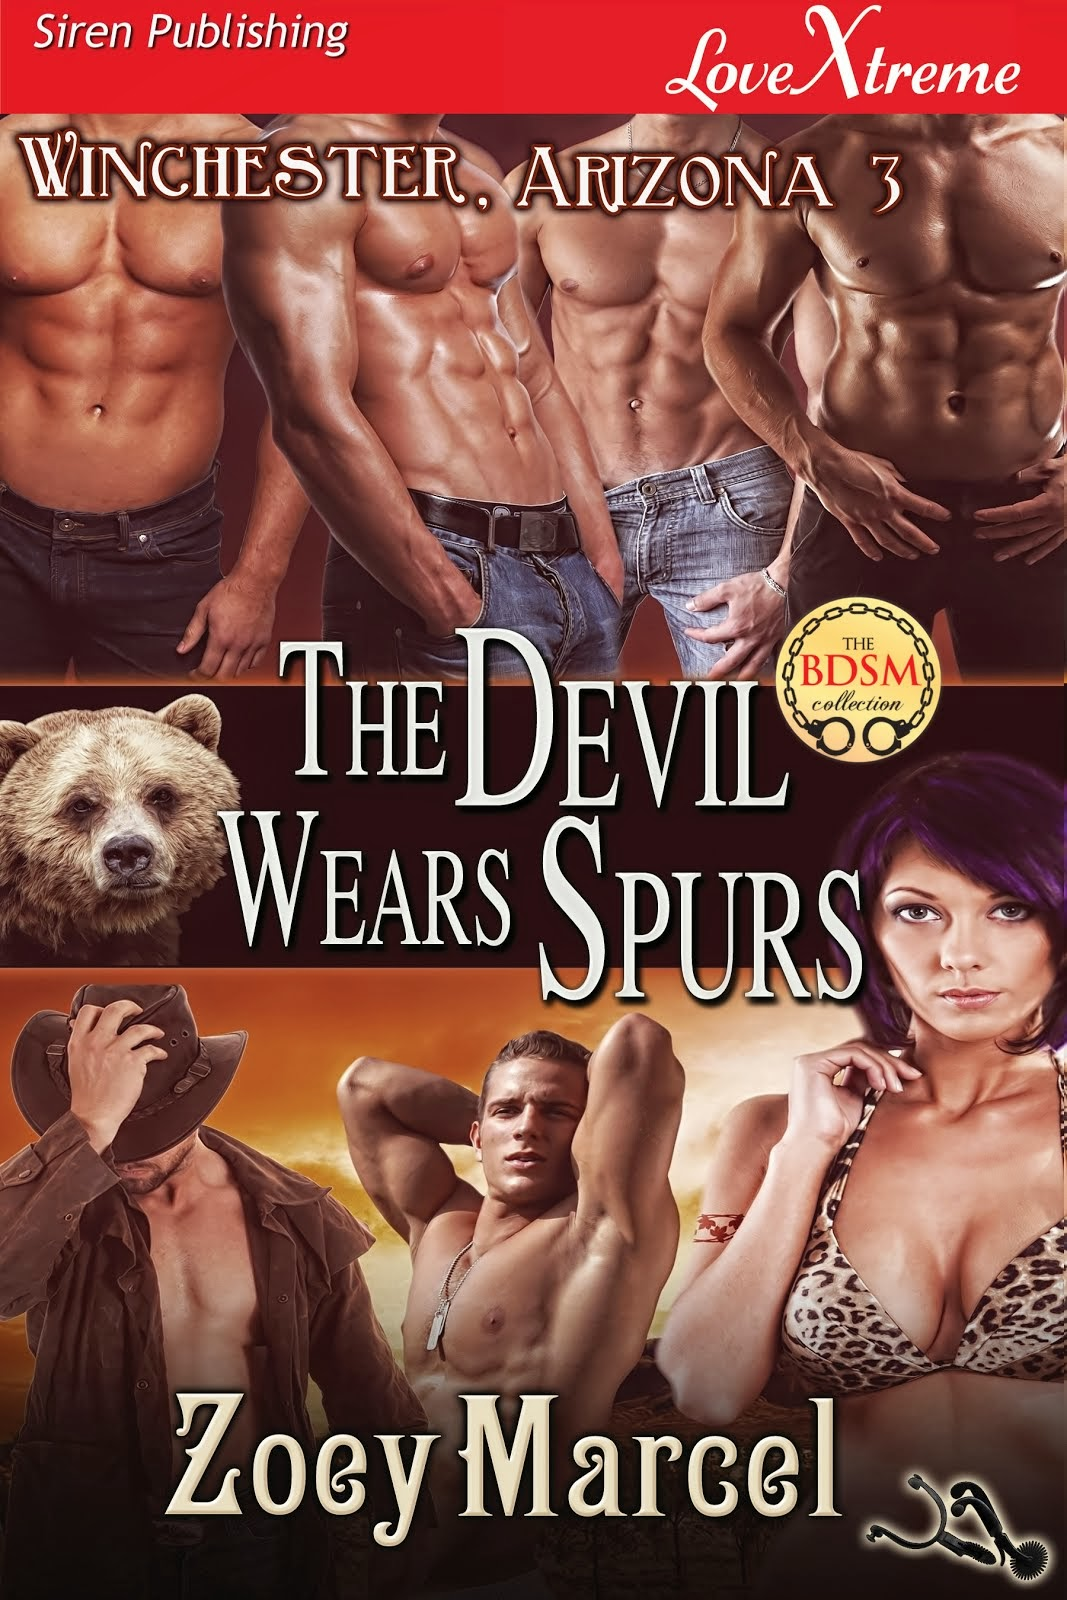 The Devil Wears Spurs (Winchester, Arizona 3)